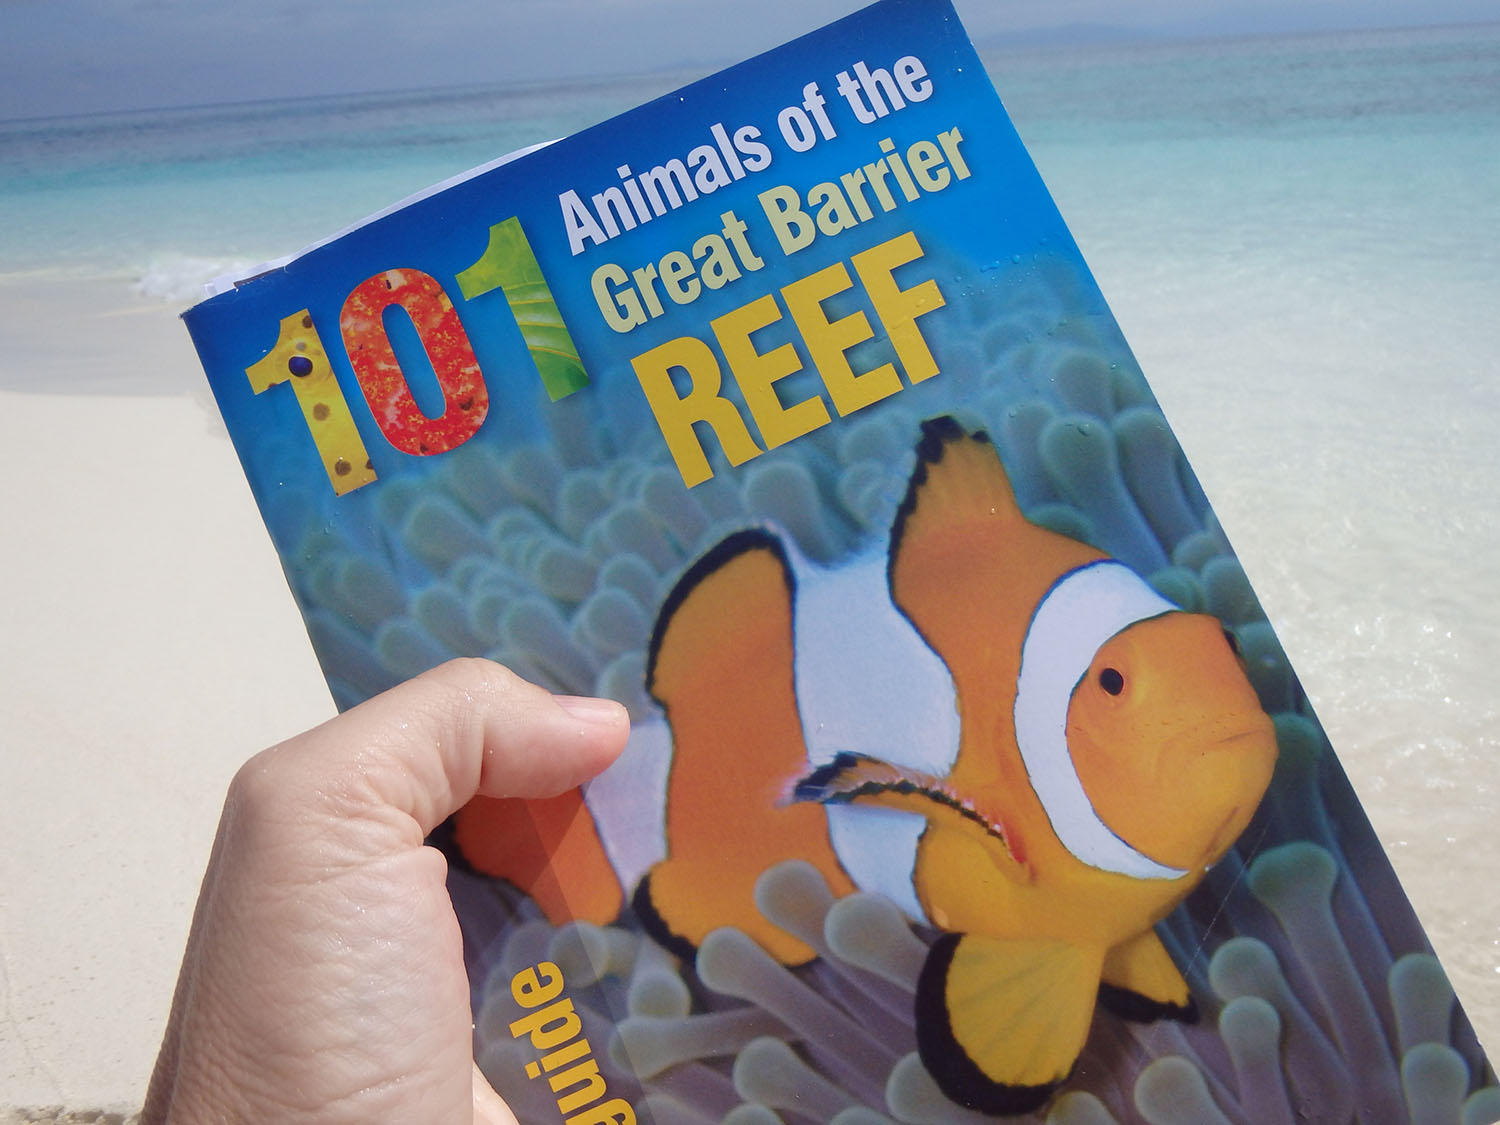 Reef student field guide